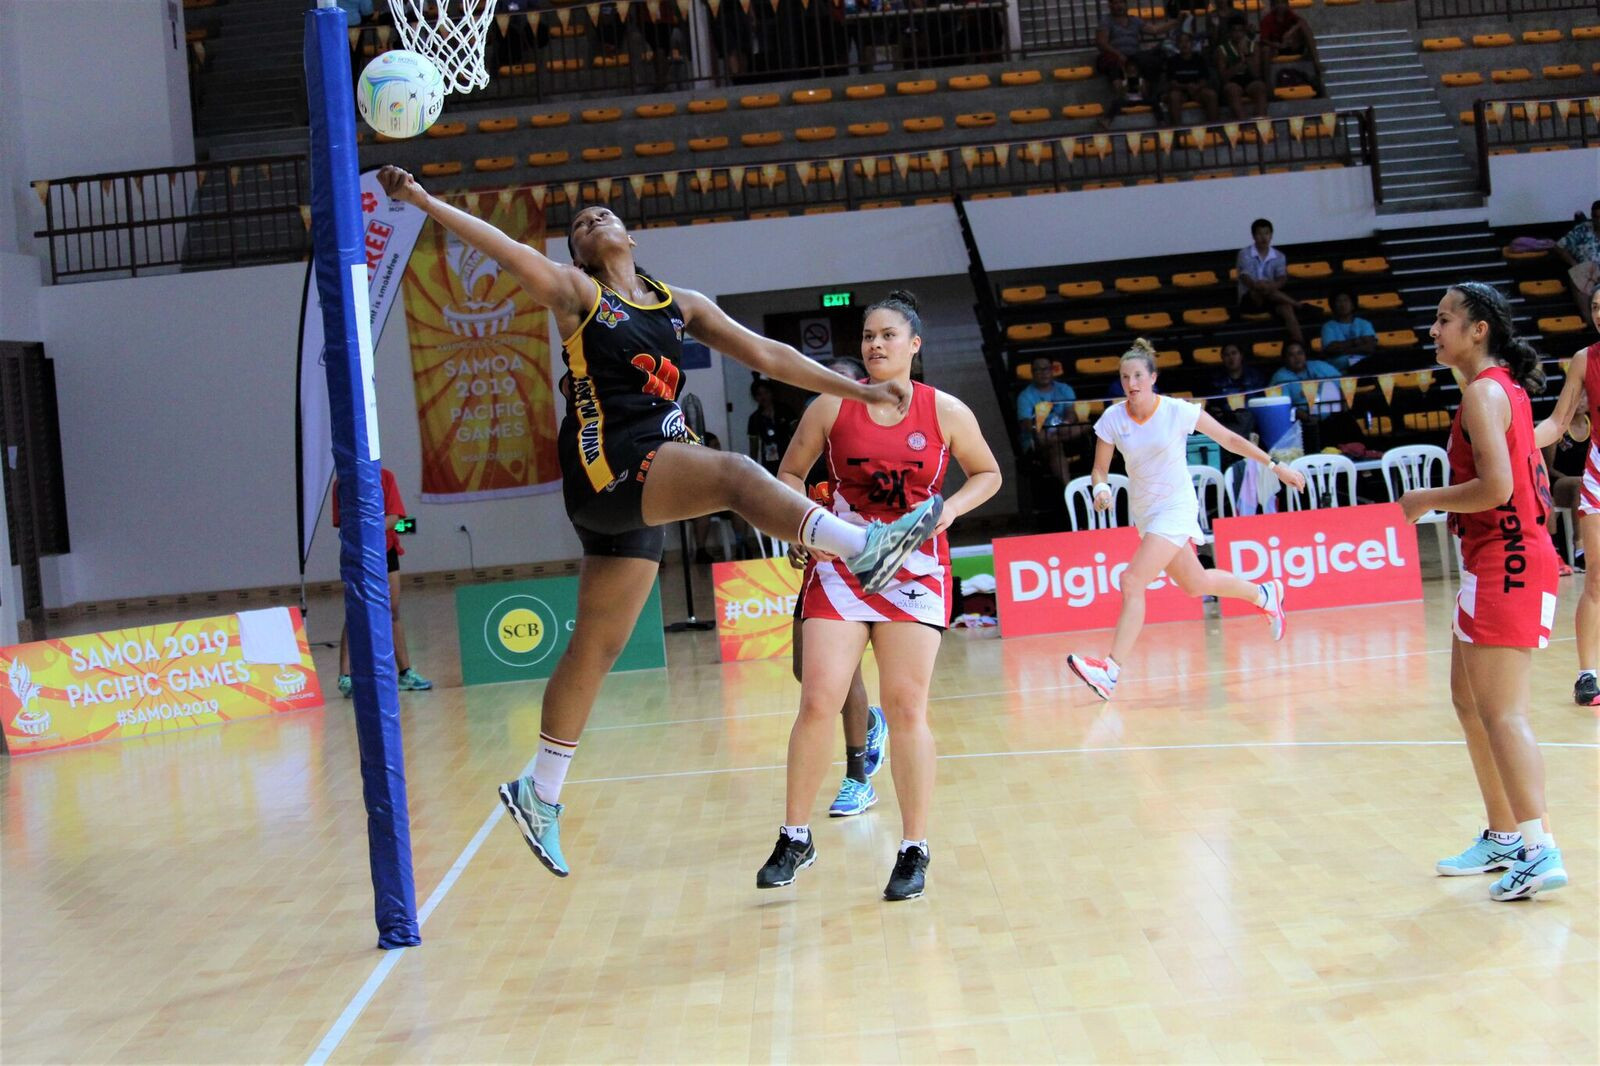 A Papua New Guinea netballer stretches for the ball during their clash with Tonga ©Games News Service